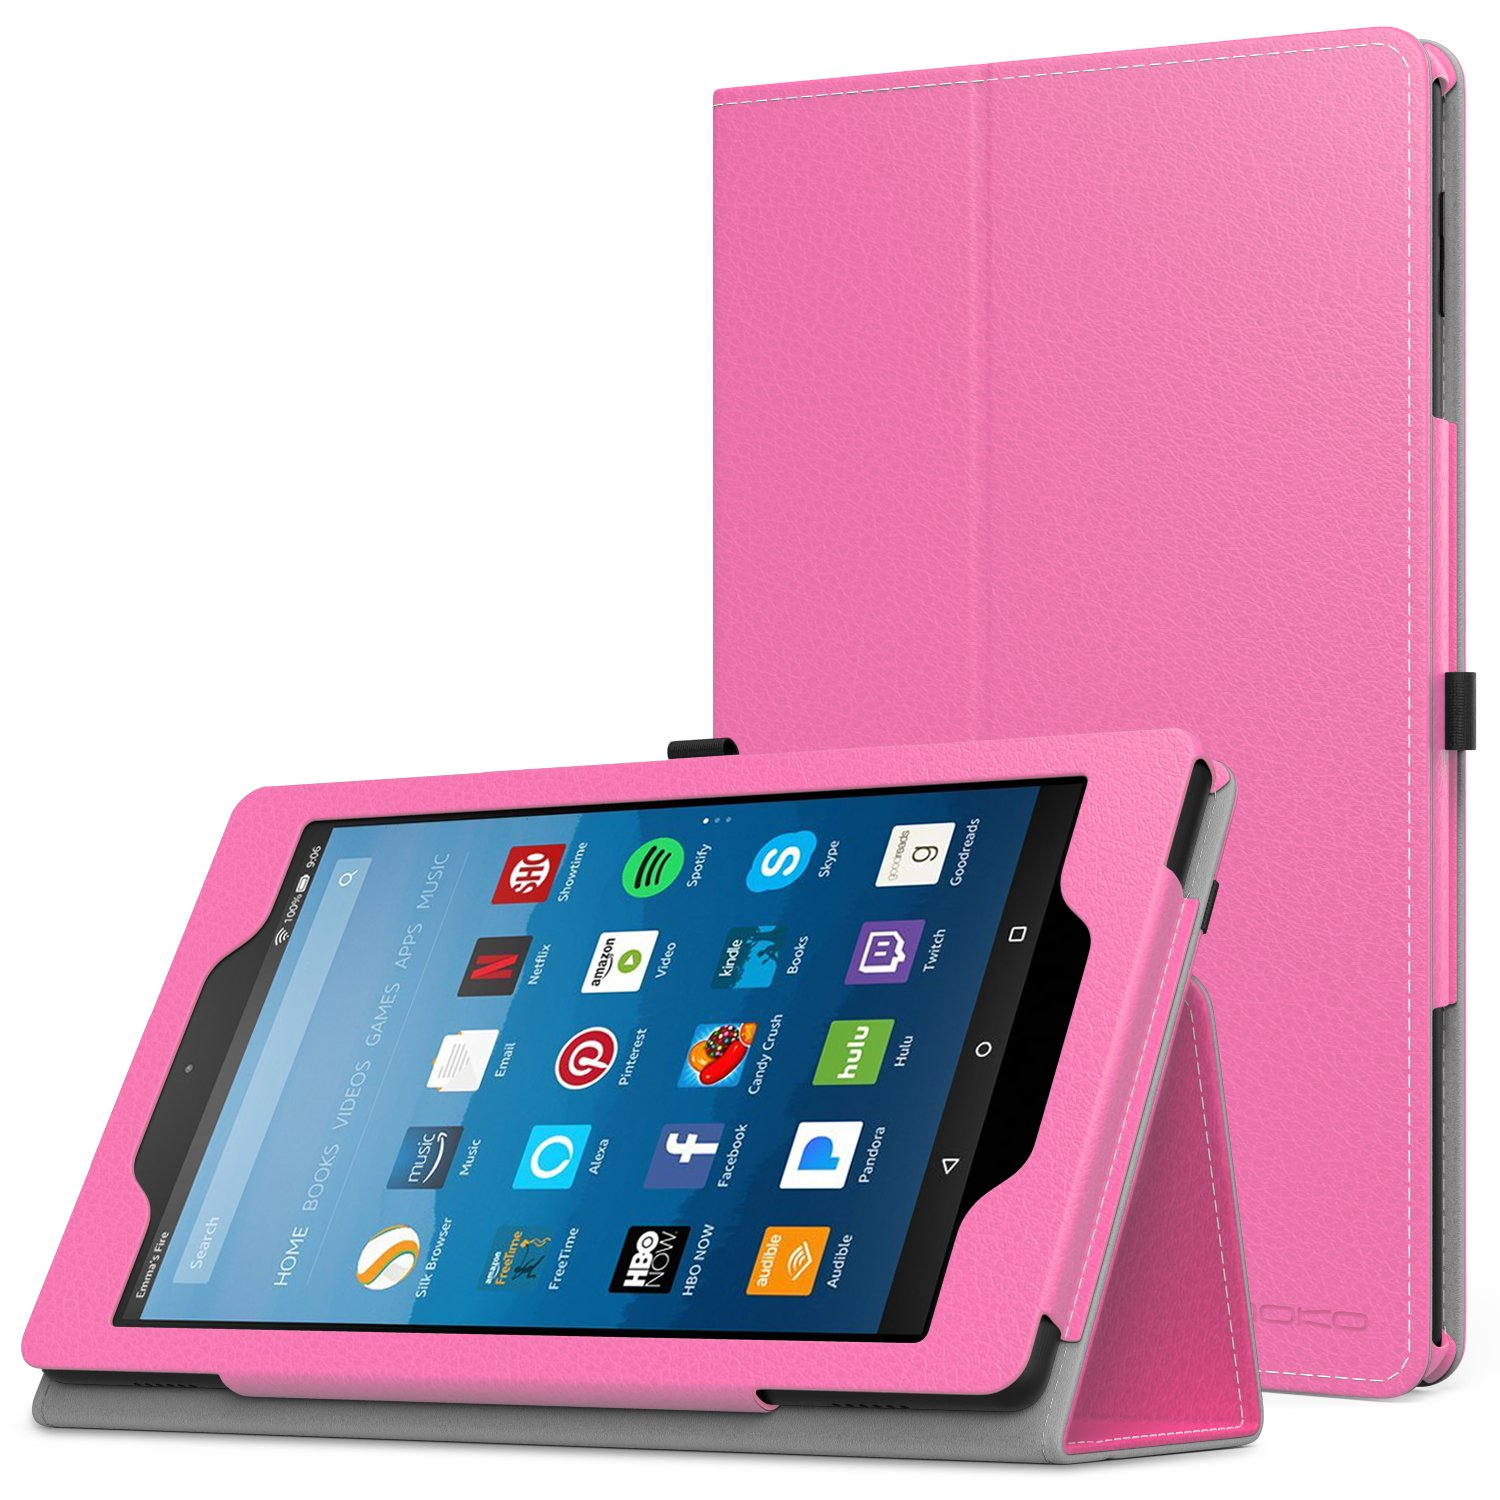 MoKo Case for All-New Amazon Fire HD 8 Tablet (7th/8th Generation, 2017/2018 Release) - Slim Folding Stand Cover for Fire HD 8, Magenta (with Auto Wake/Sleep)